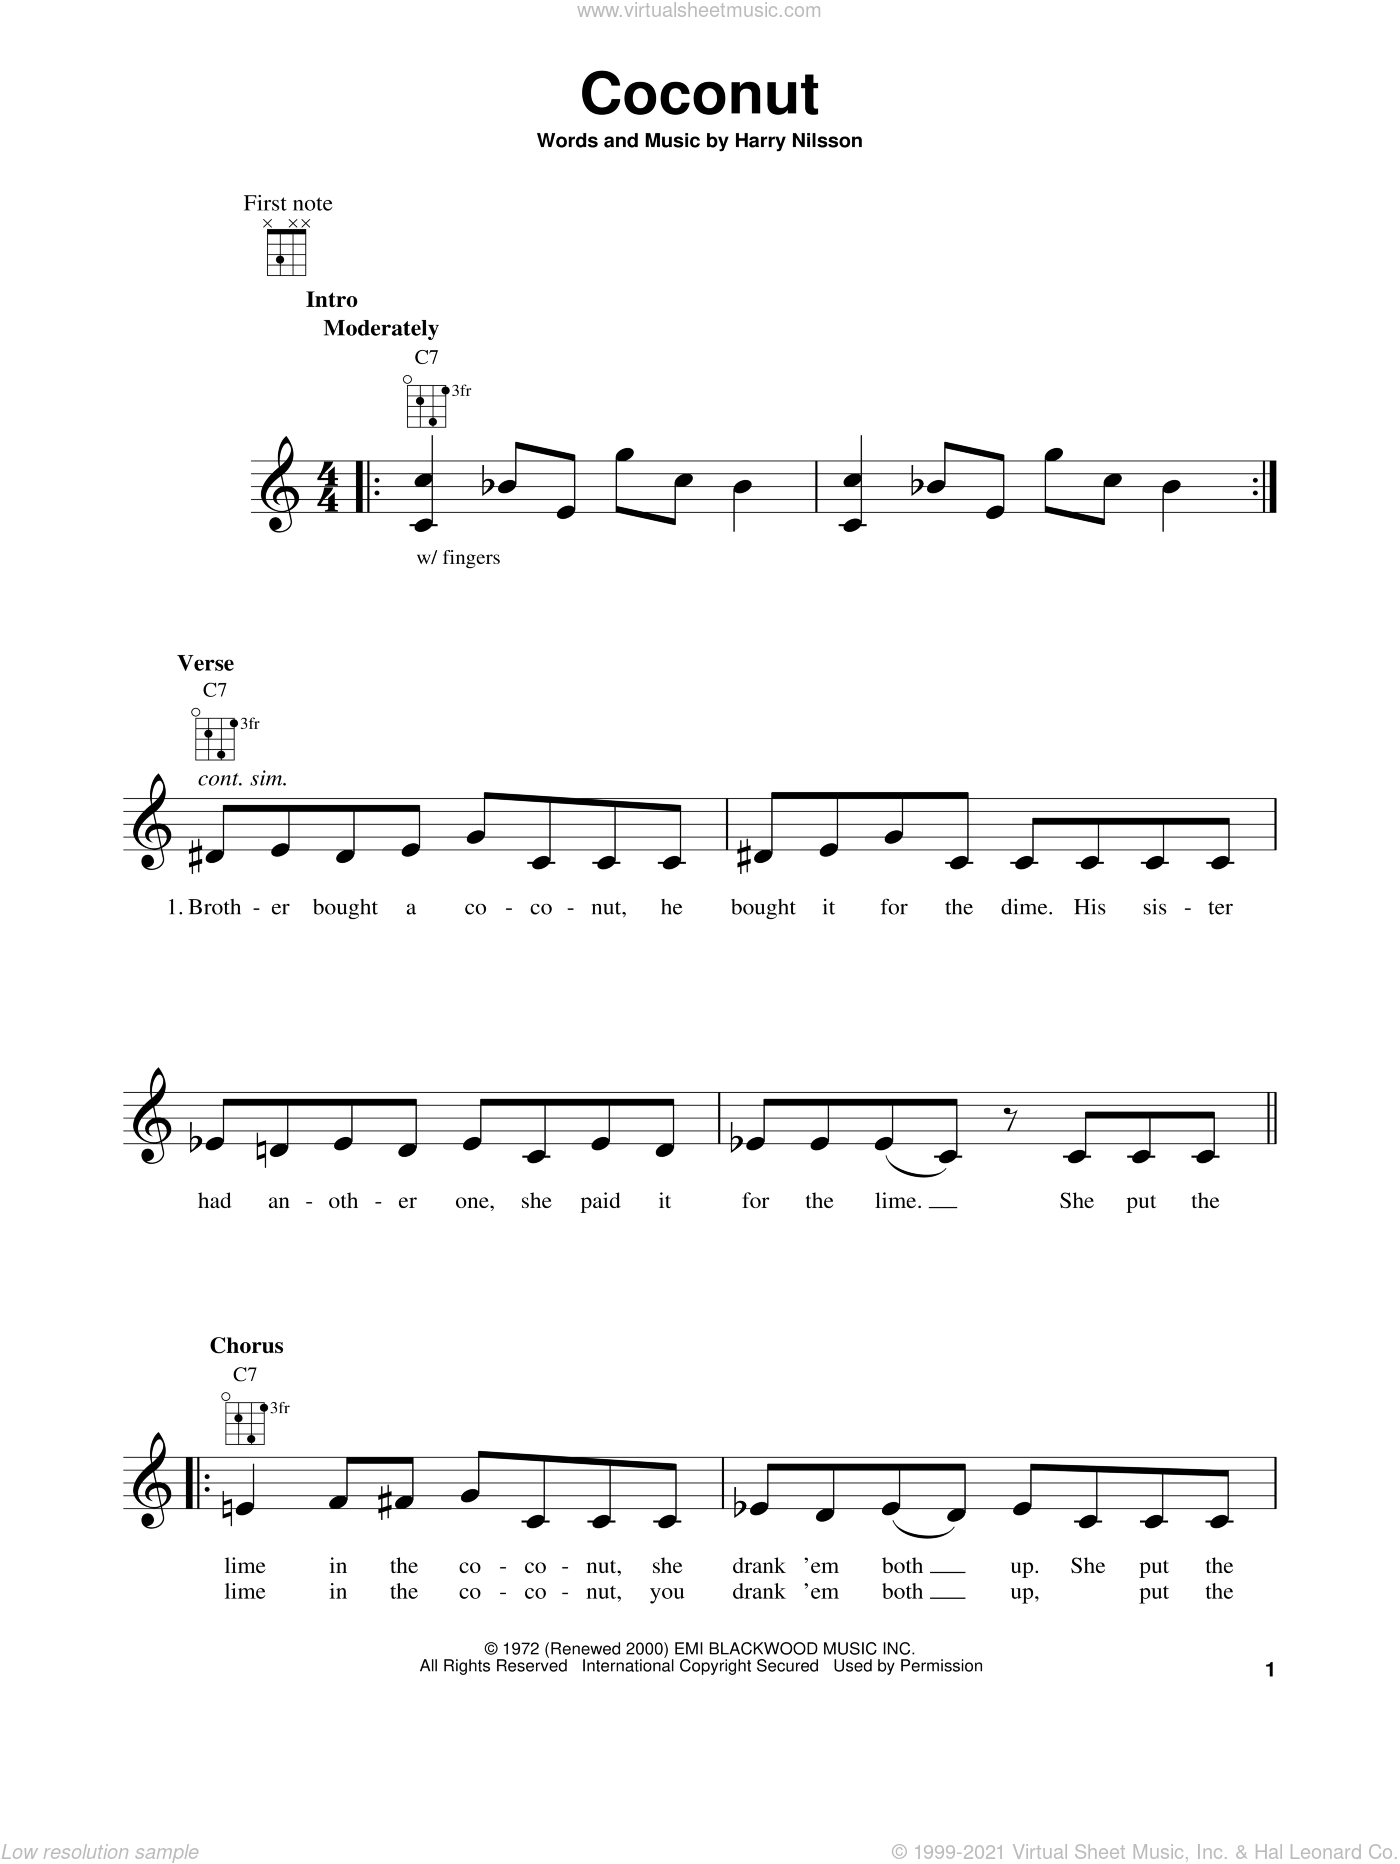 Coconut sheet music for ukulele by Harry Nilsson